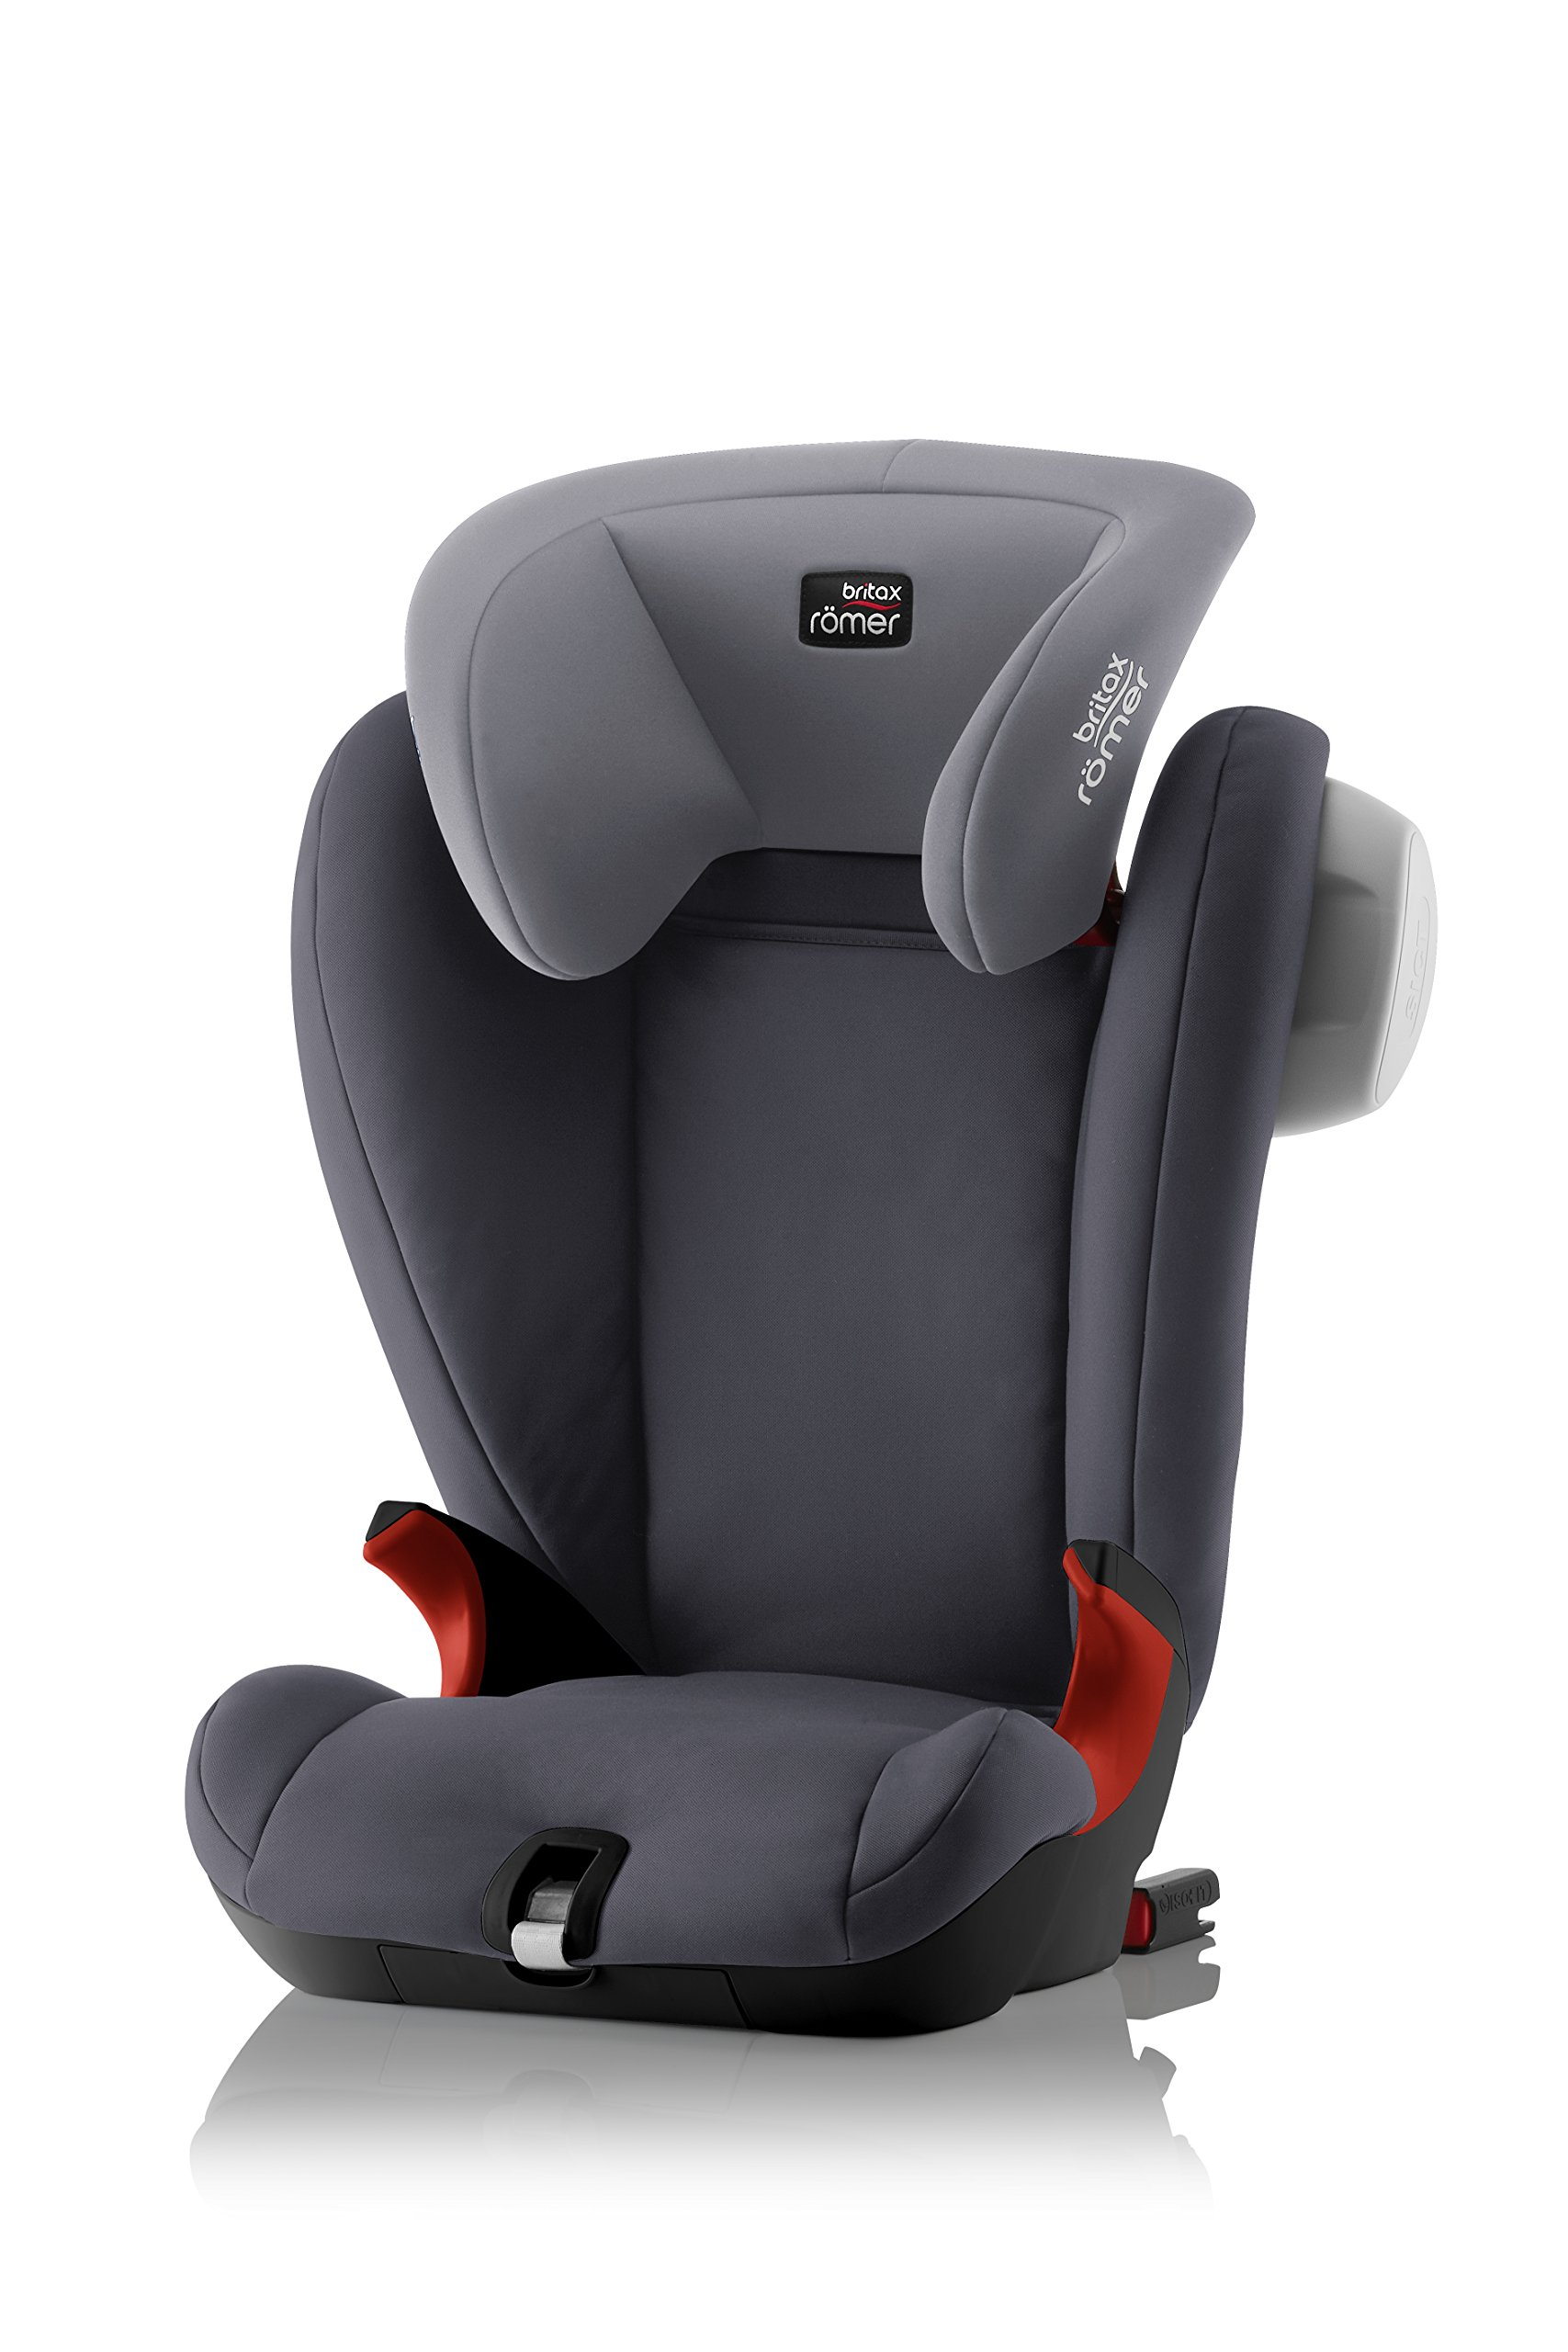 Britax Römer KIDFIX SL SICT BLACK SERIES Group 2-3 (15-36kg) Car Seat - Storm Grey Britax Römer Side impact protection - deep, softly padded side wings and sict technology, removable to use only on the side closest to the door Simple installation - soft-latch isofit system Misuse limiting design - intuitively positioned seat belt guides 1